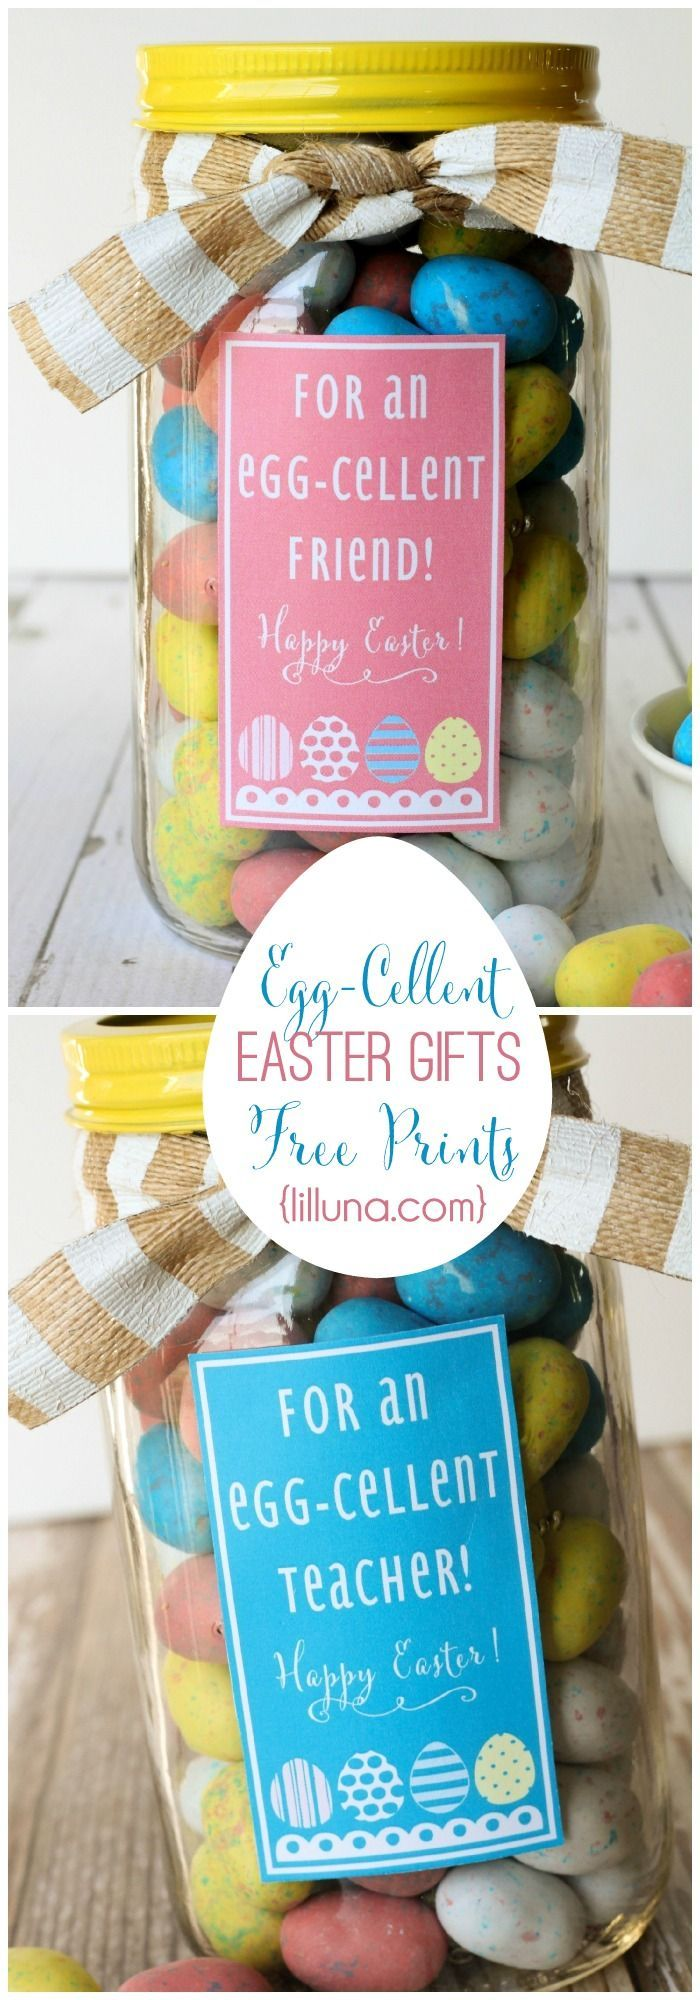 35 best easter ideas gifts for family and friends images on egg cellent easter gift ideas cute and inexpensive free prints on lilluna negle Images